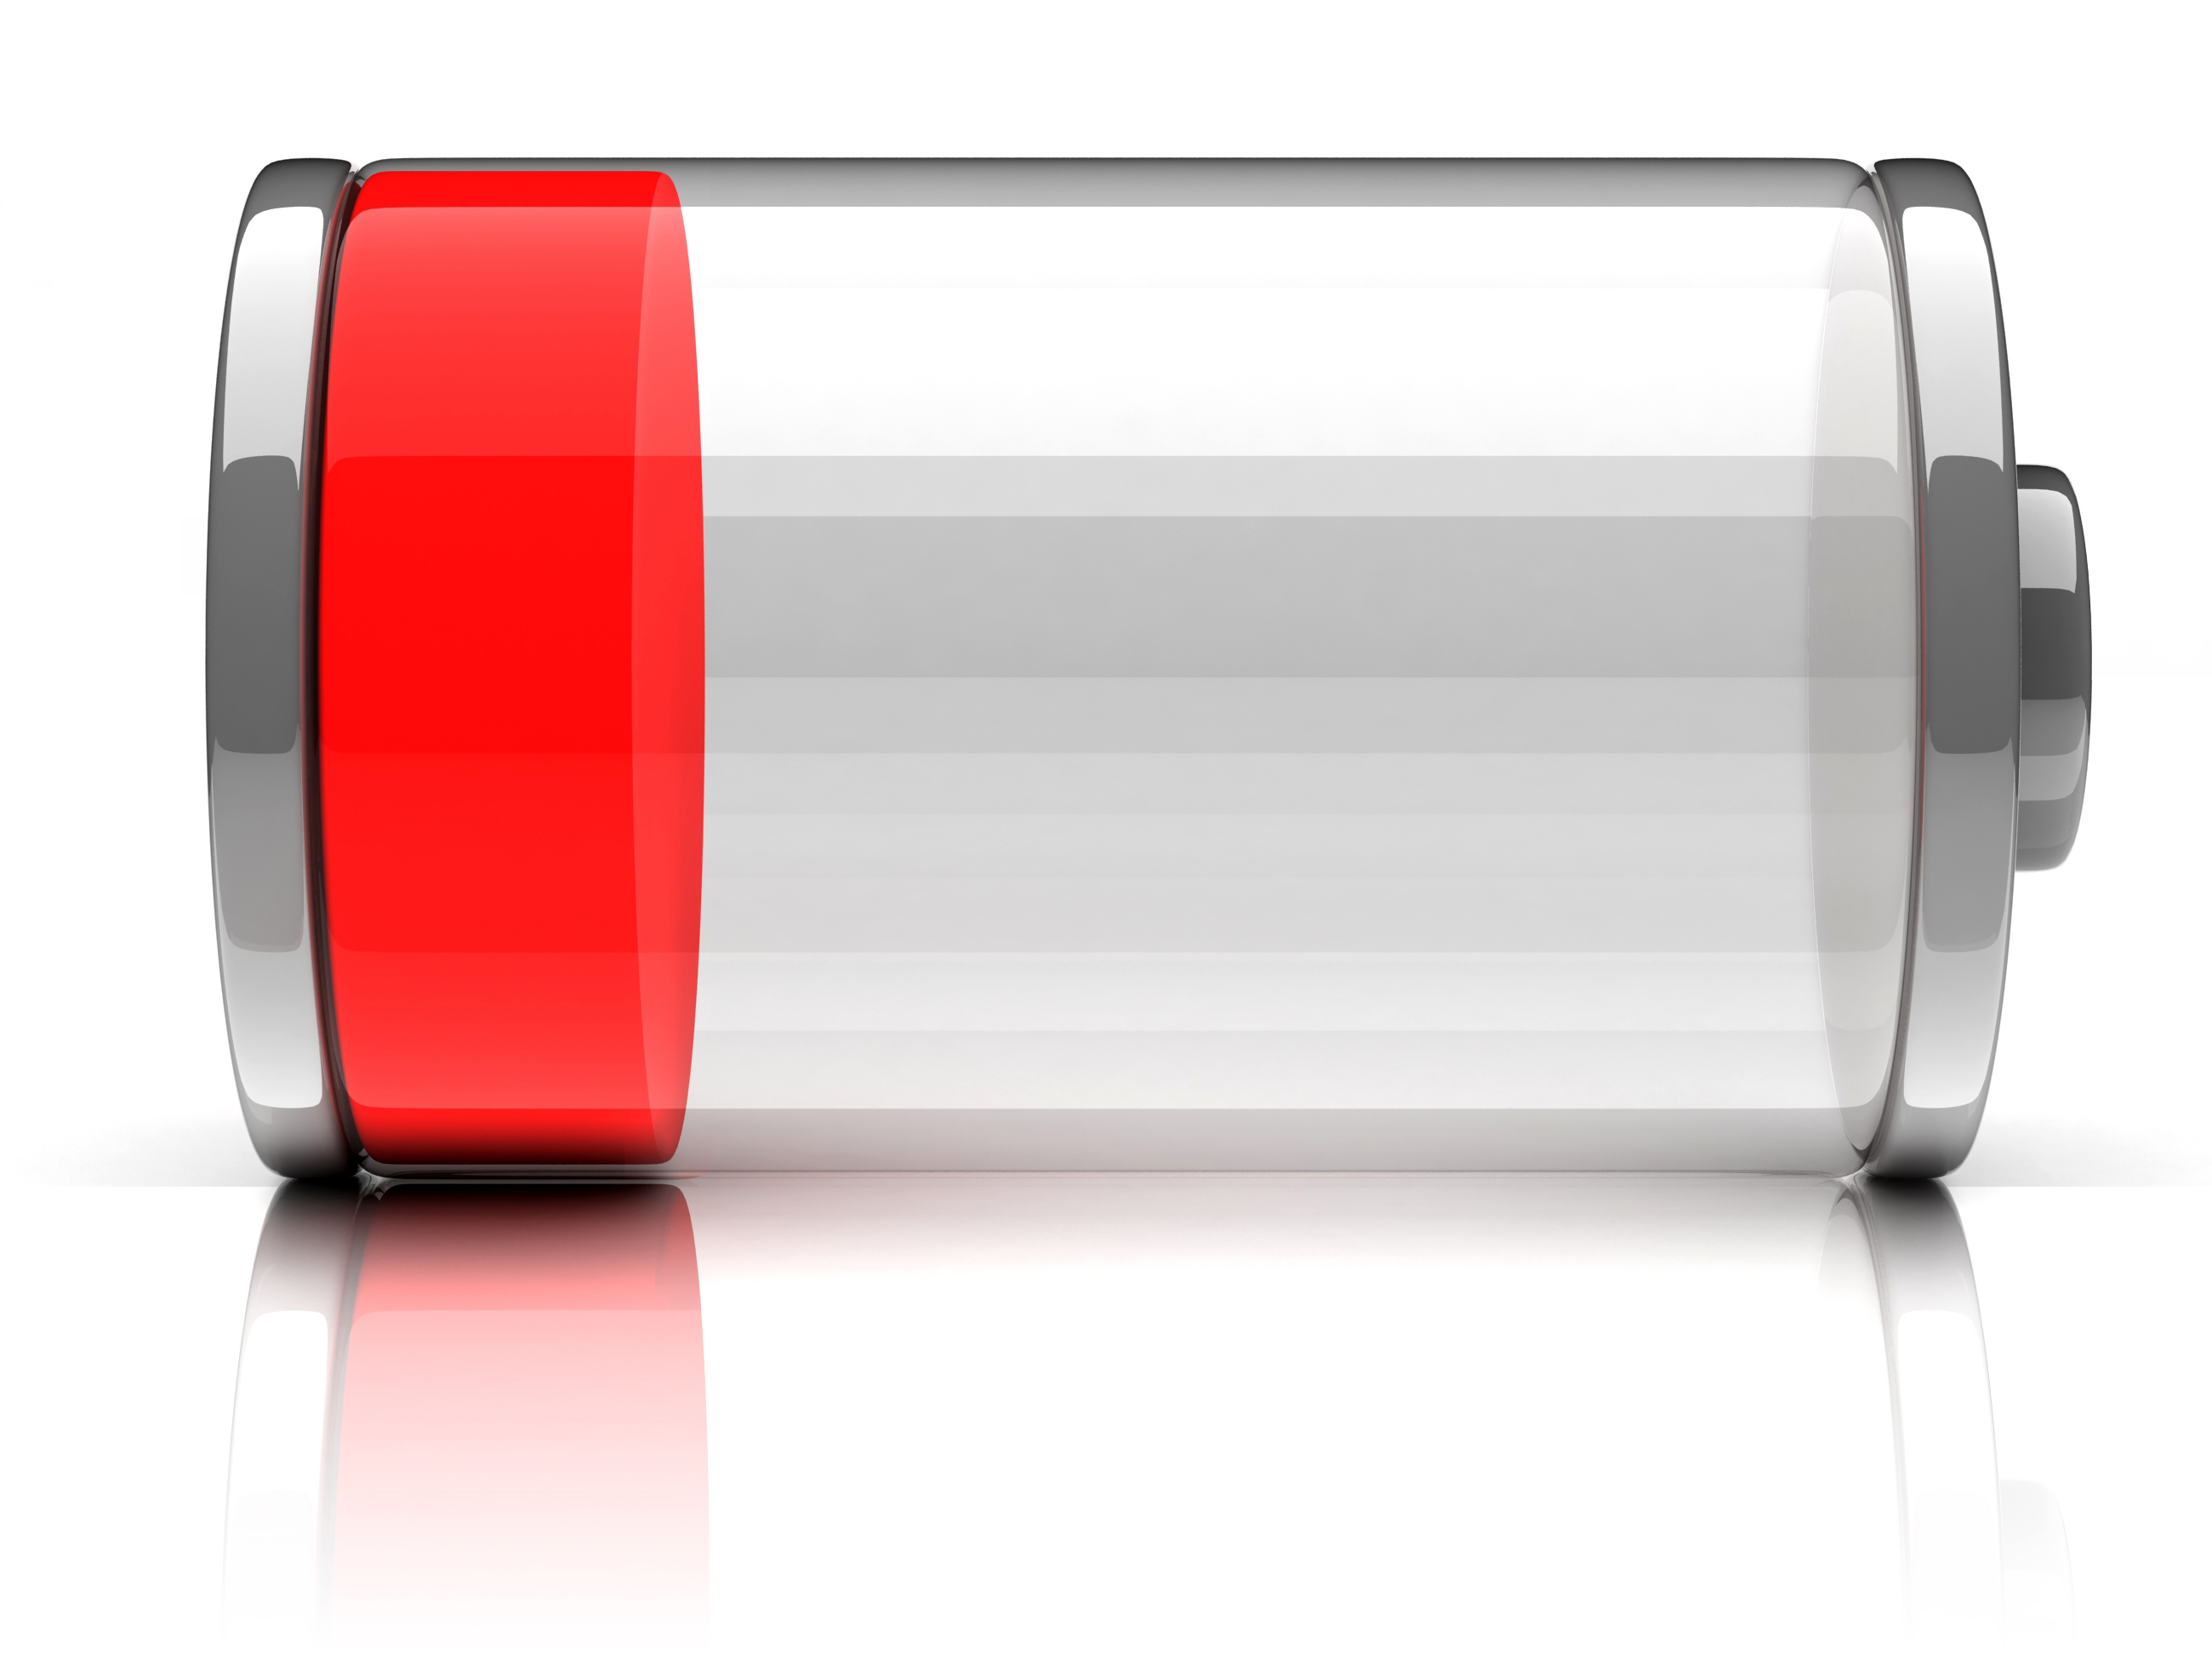 Update The Facebook app on Your iPhone now to save its battery